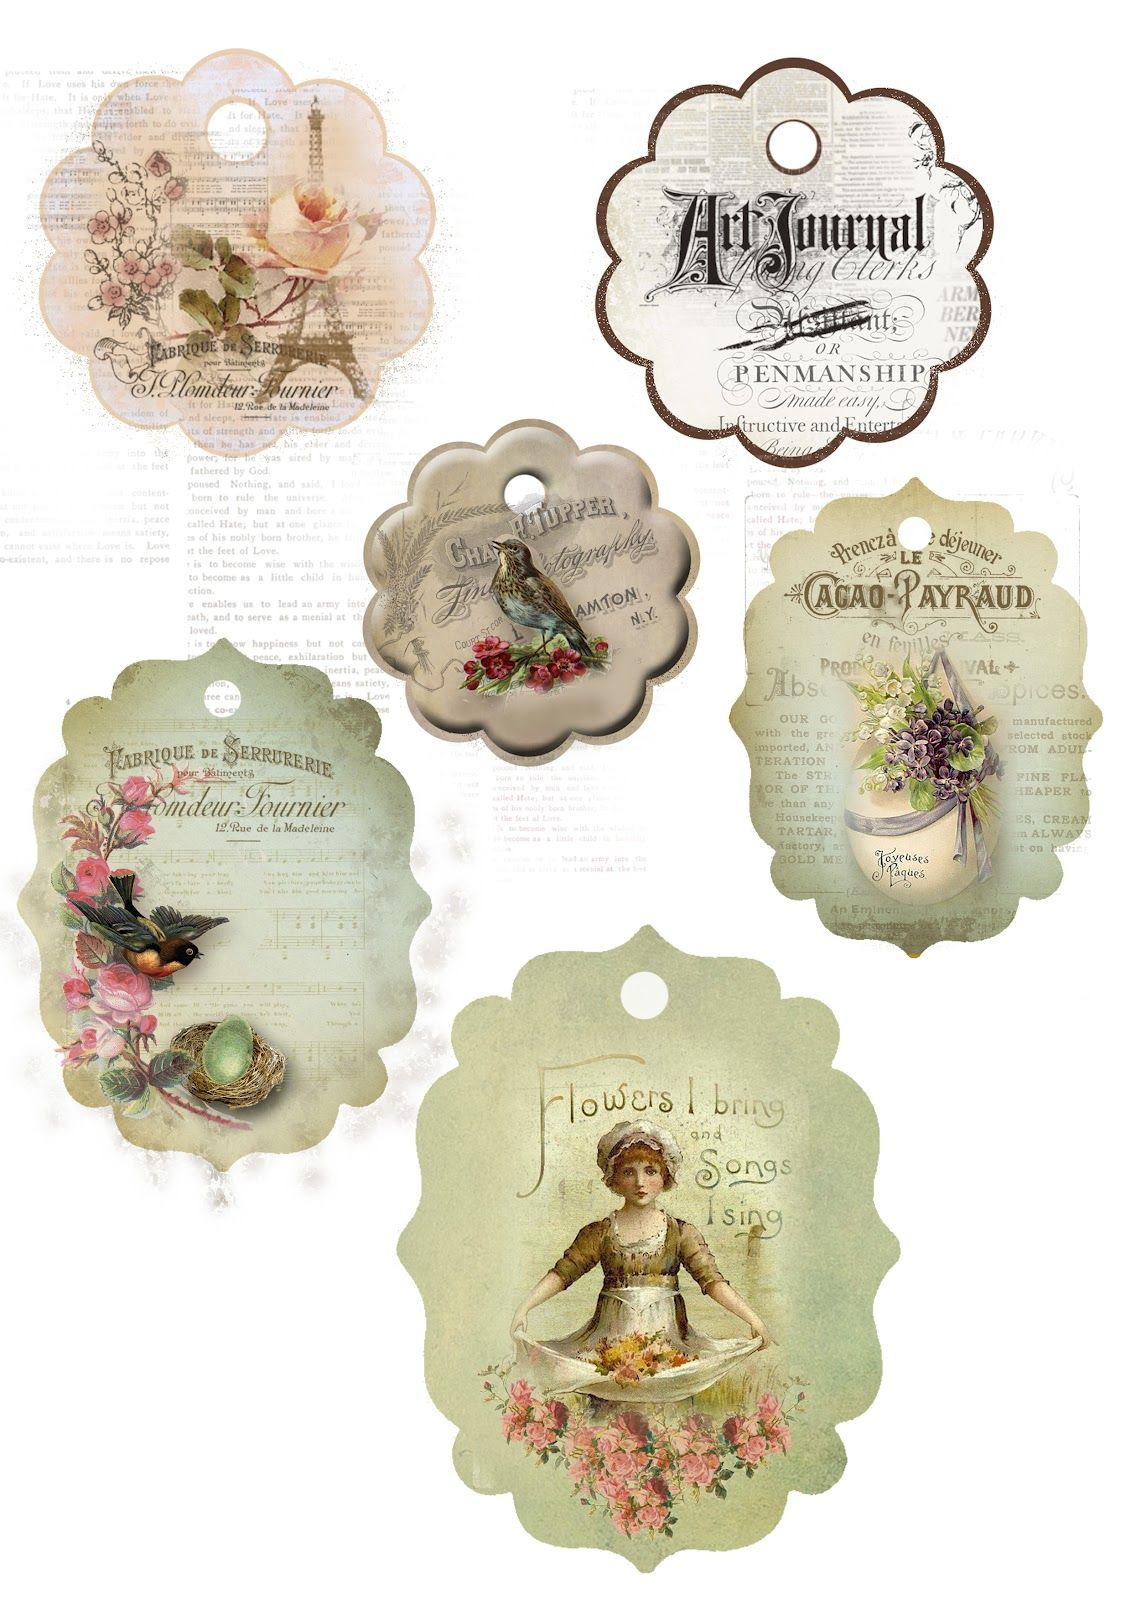 Astrid's Artistic Efforts: My Freebies.  Tags : Gift tags, labels, ephemera, printable images, decoration & DIY paper crafts. Amazingly gracious site.